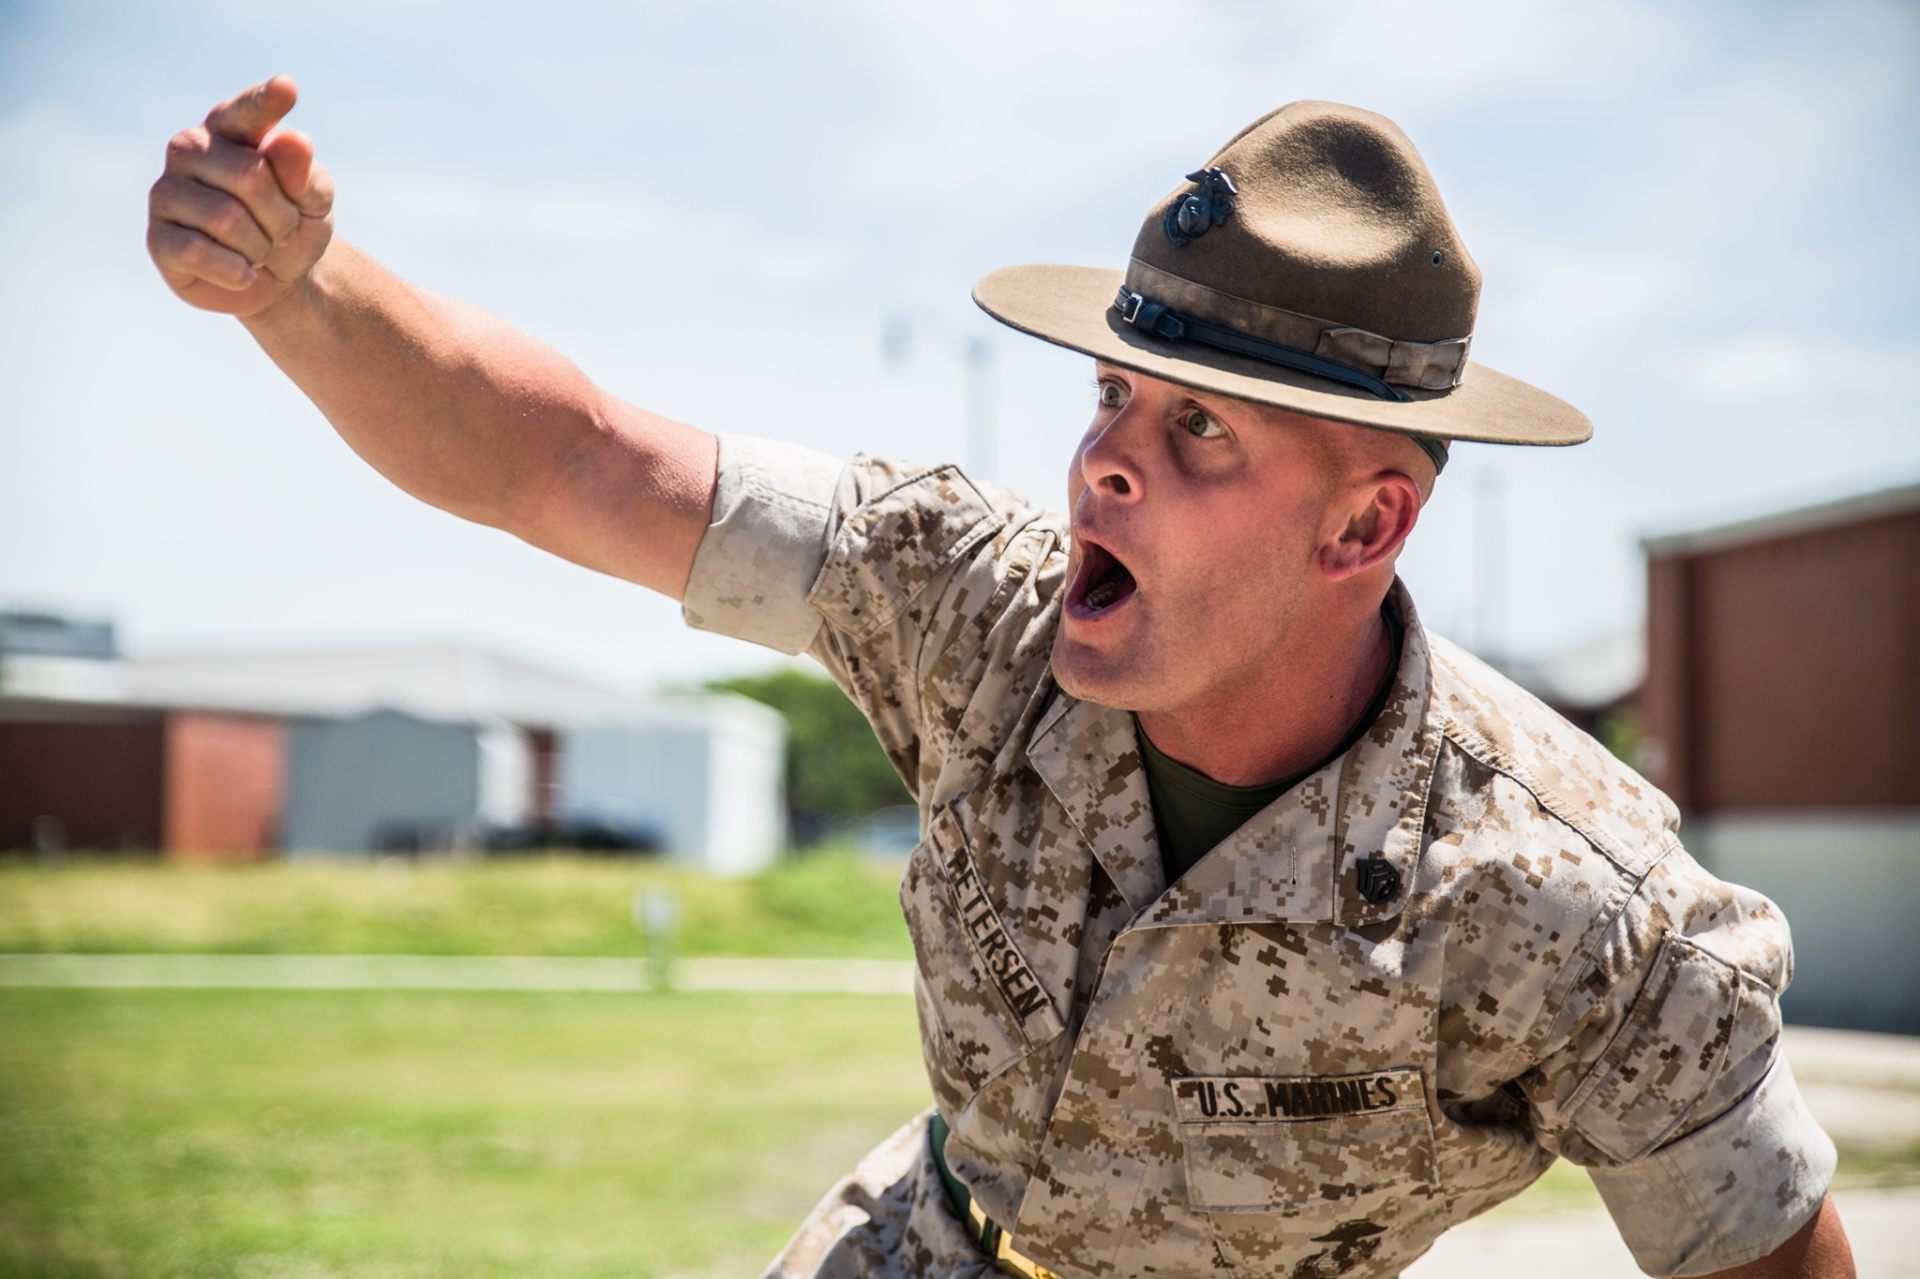 marine corps drill instructor issuing orders